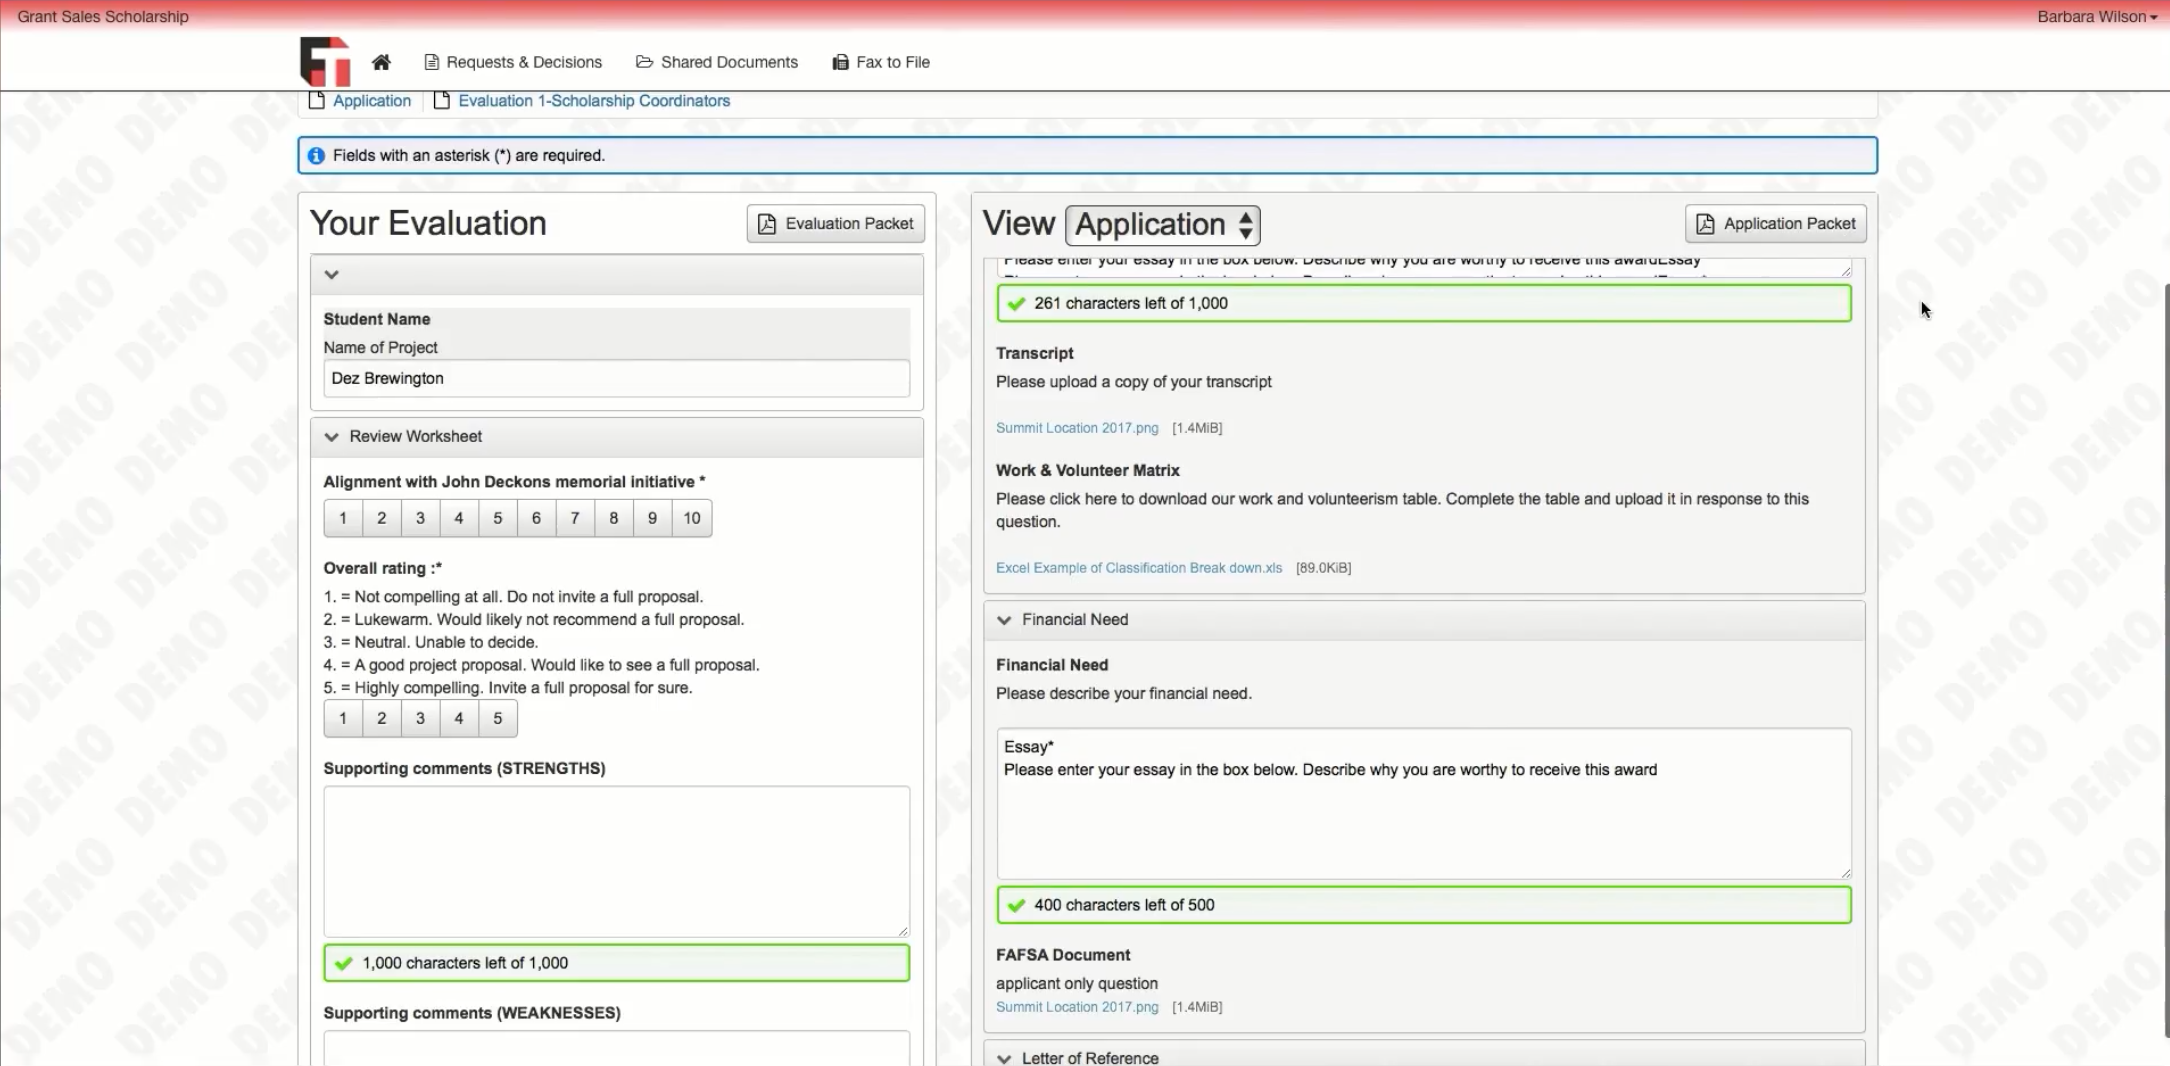 When reviewing applications, view a side-by-side review form with scoring questions on the left, and the applicant's application on the right